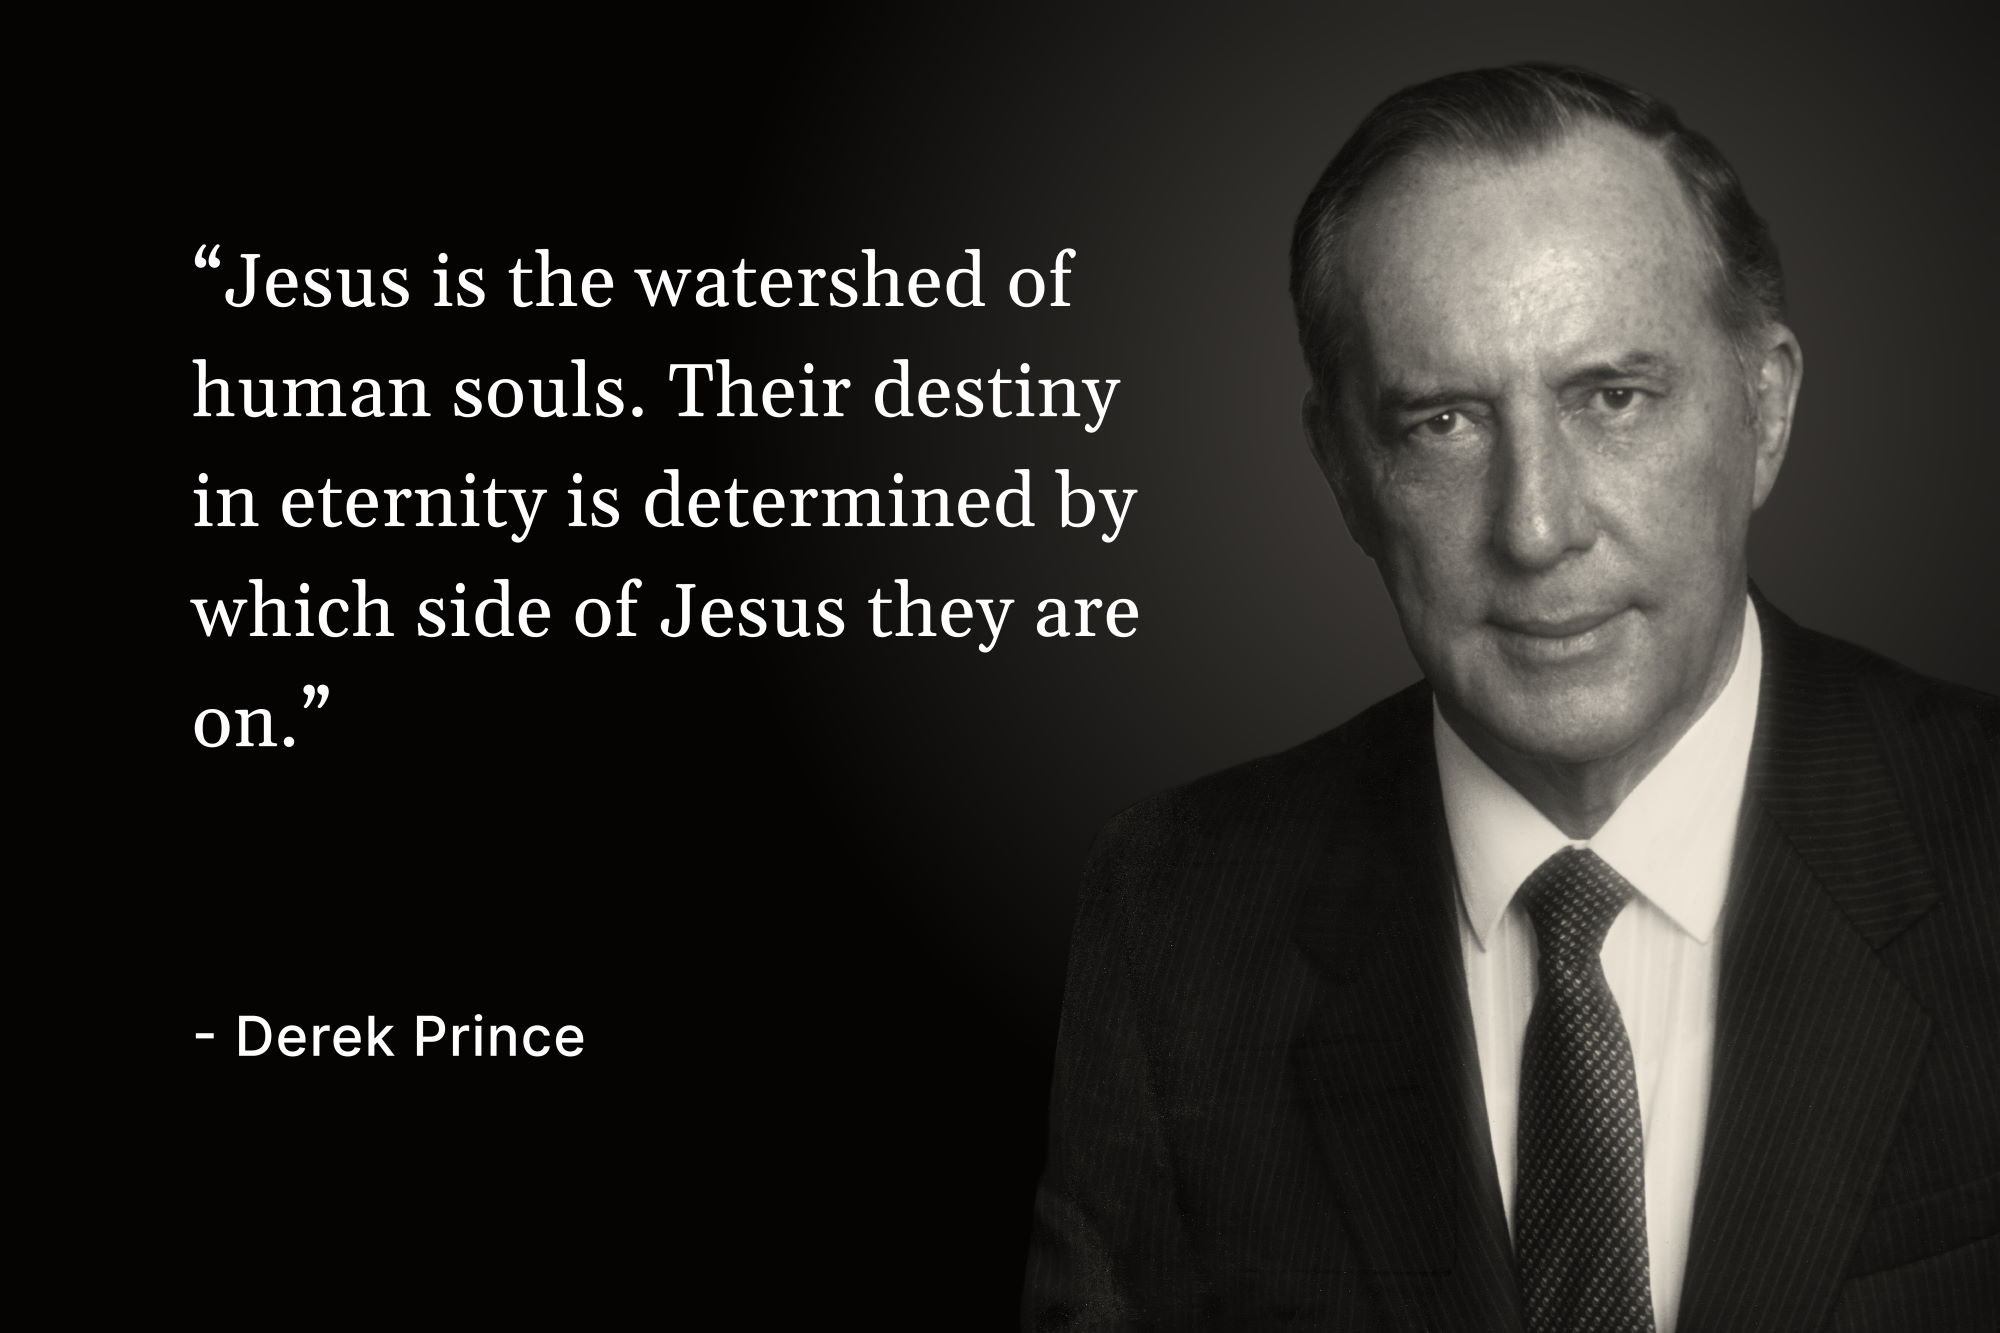 """A photo of Derek Prince with a quote that reads, """"Jesus is the watershed of human souls. Their destiny in eternity is determined by which side of Jesus they are on."""""""